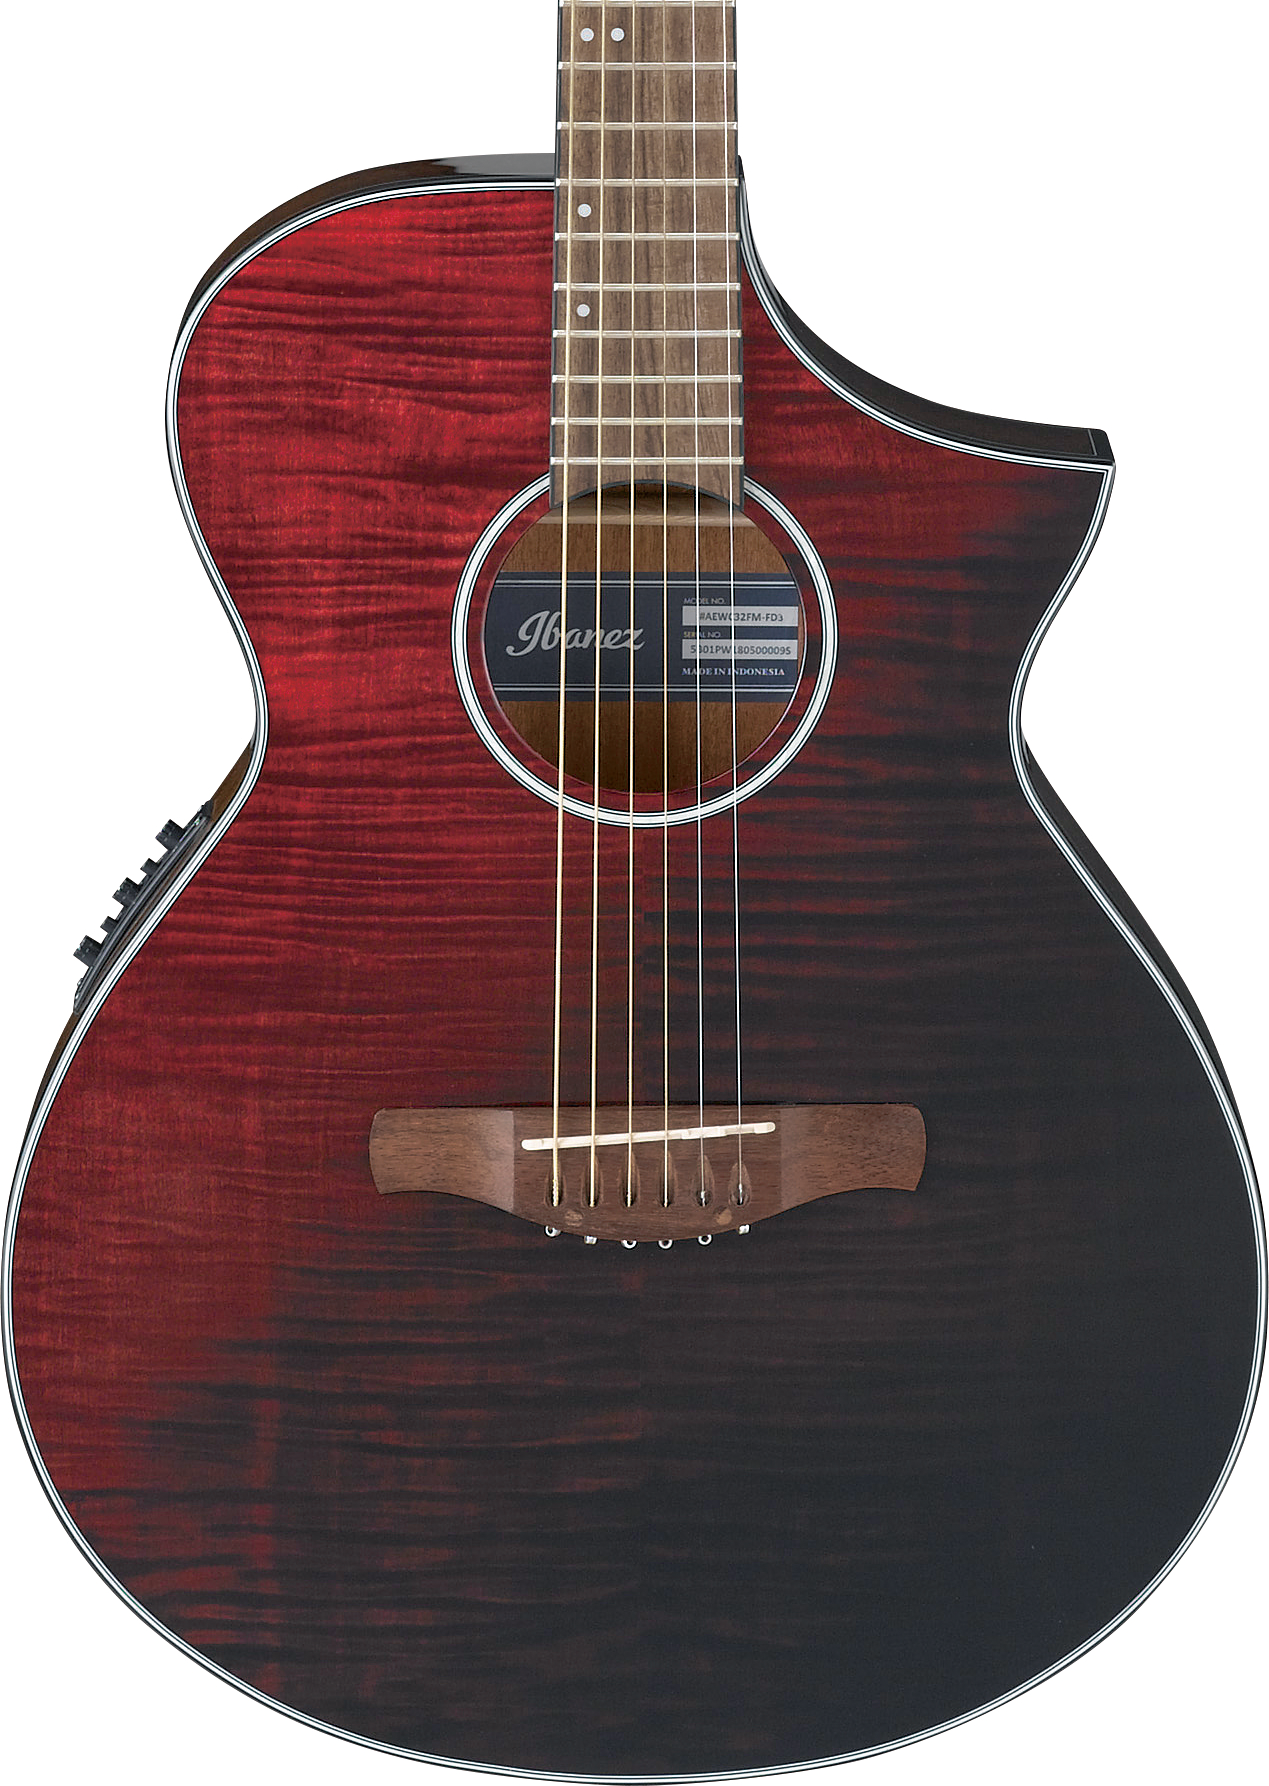 Ibanez Aewc32fm Rsf Acoustic Guitar In Red Sunset Fade Andertons Music Co Acoustic Aewc32fm Aewc32fmrsf Andertons F In 2020 Acoustic Guitar Guitar Red Sunset